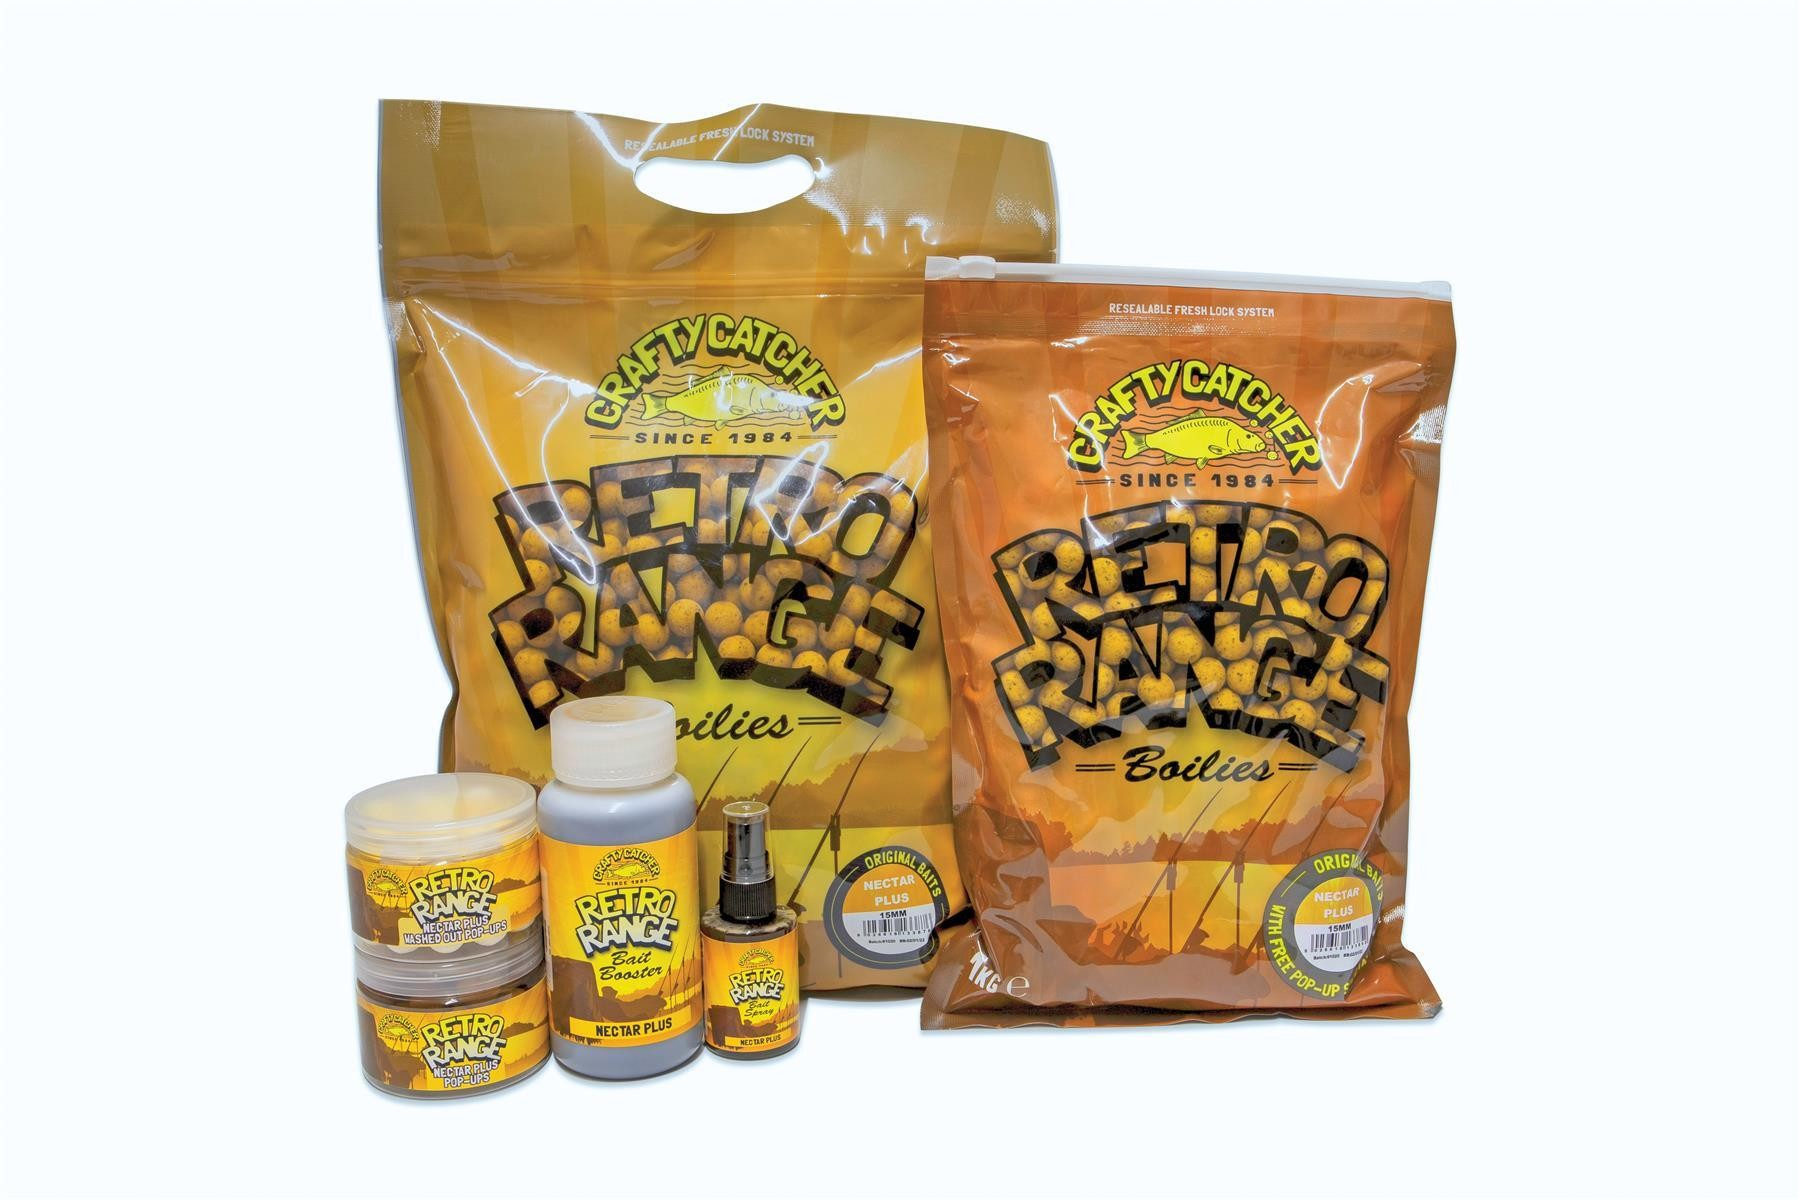 Crafty Catcher Retro Range Nectar Plus Bundle Boilies & Liquids 2.5kg